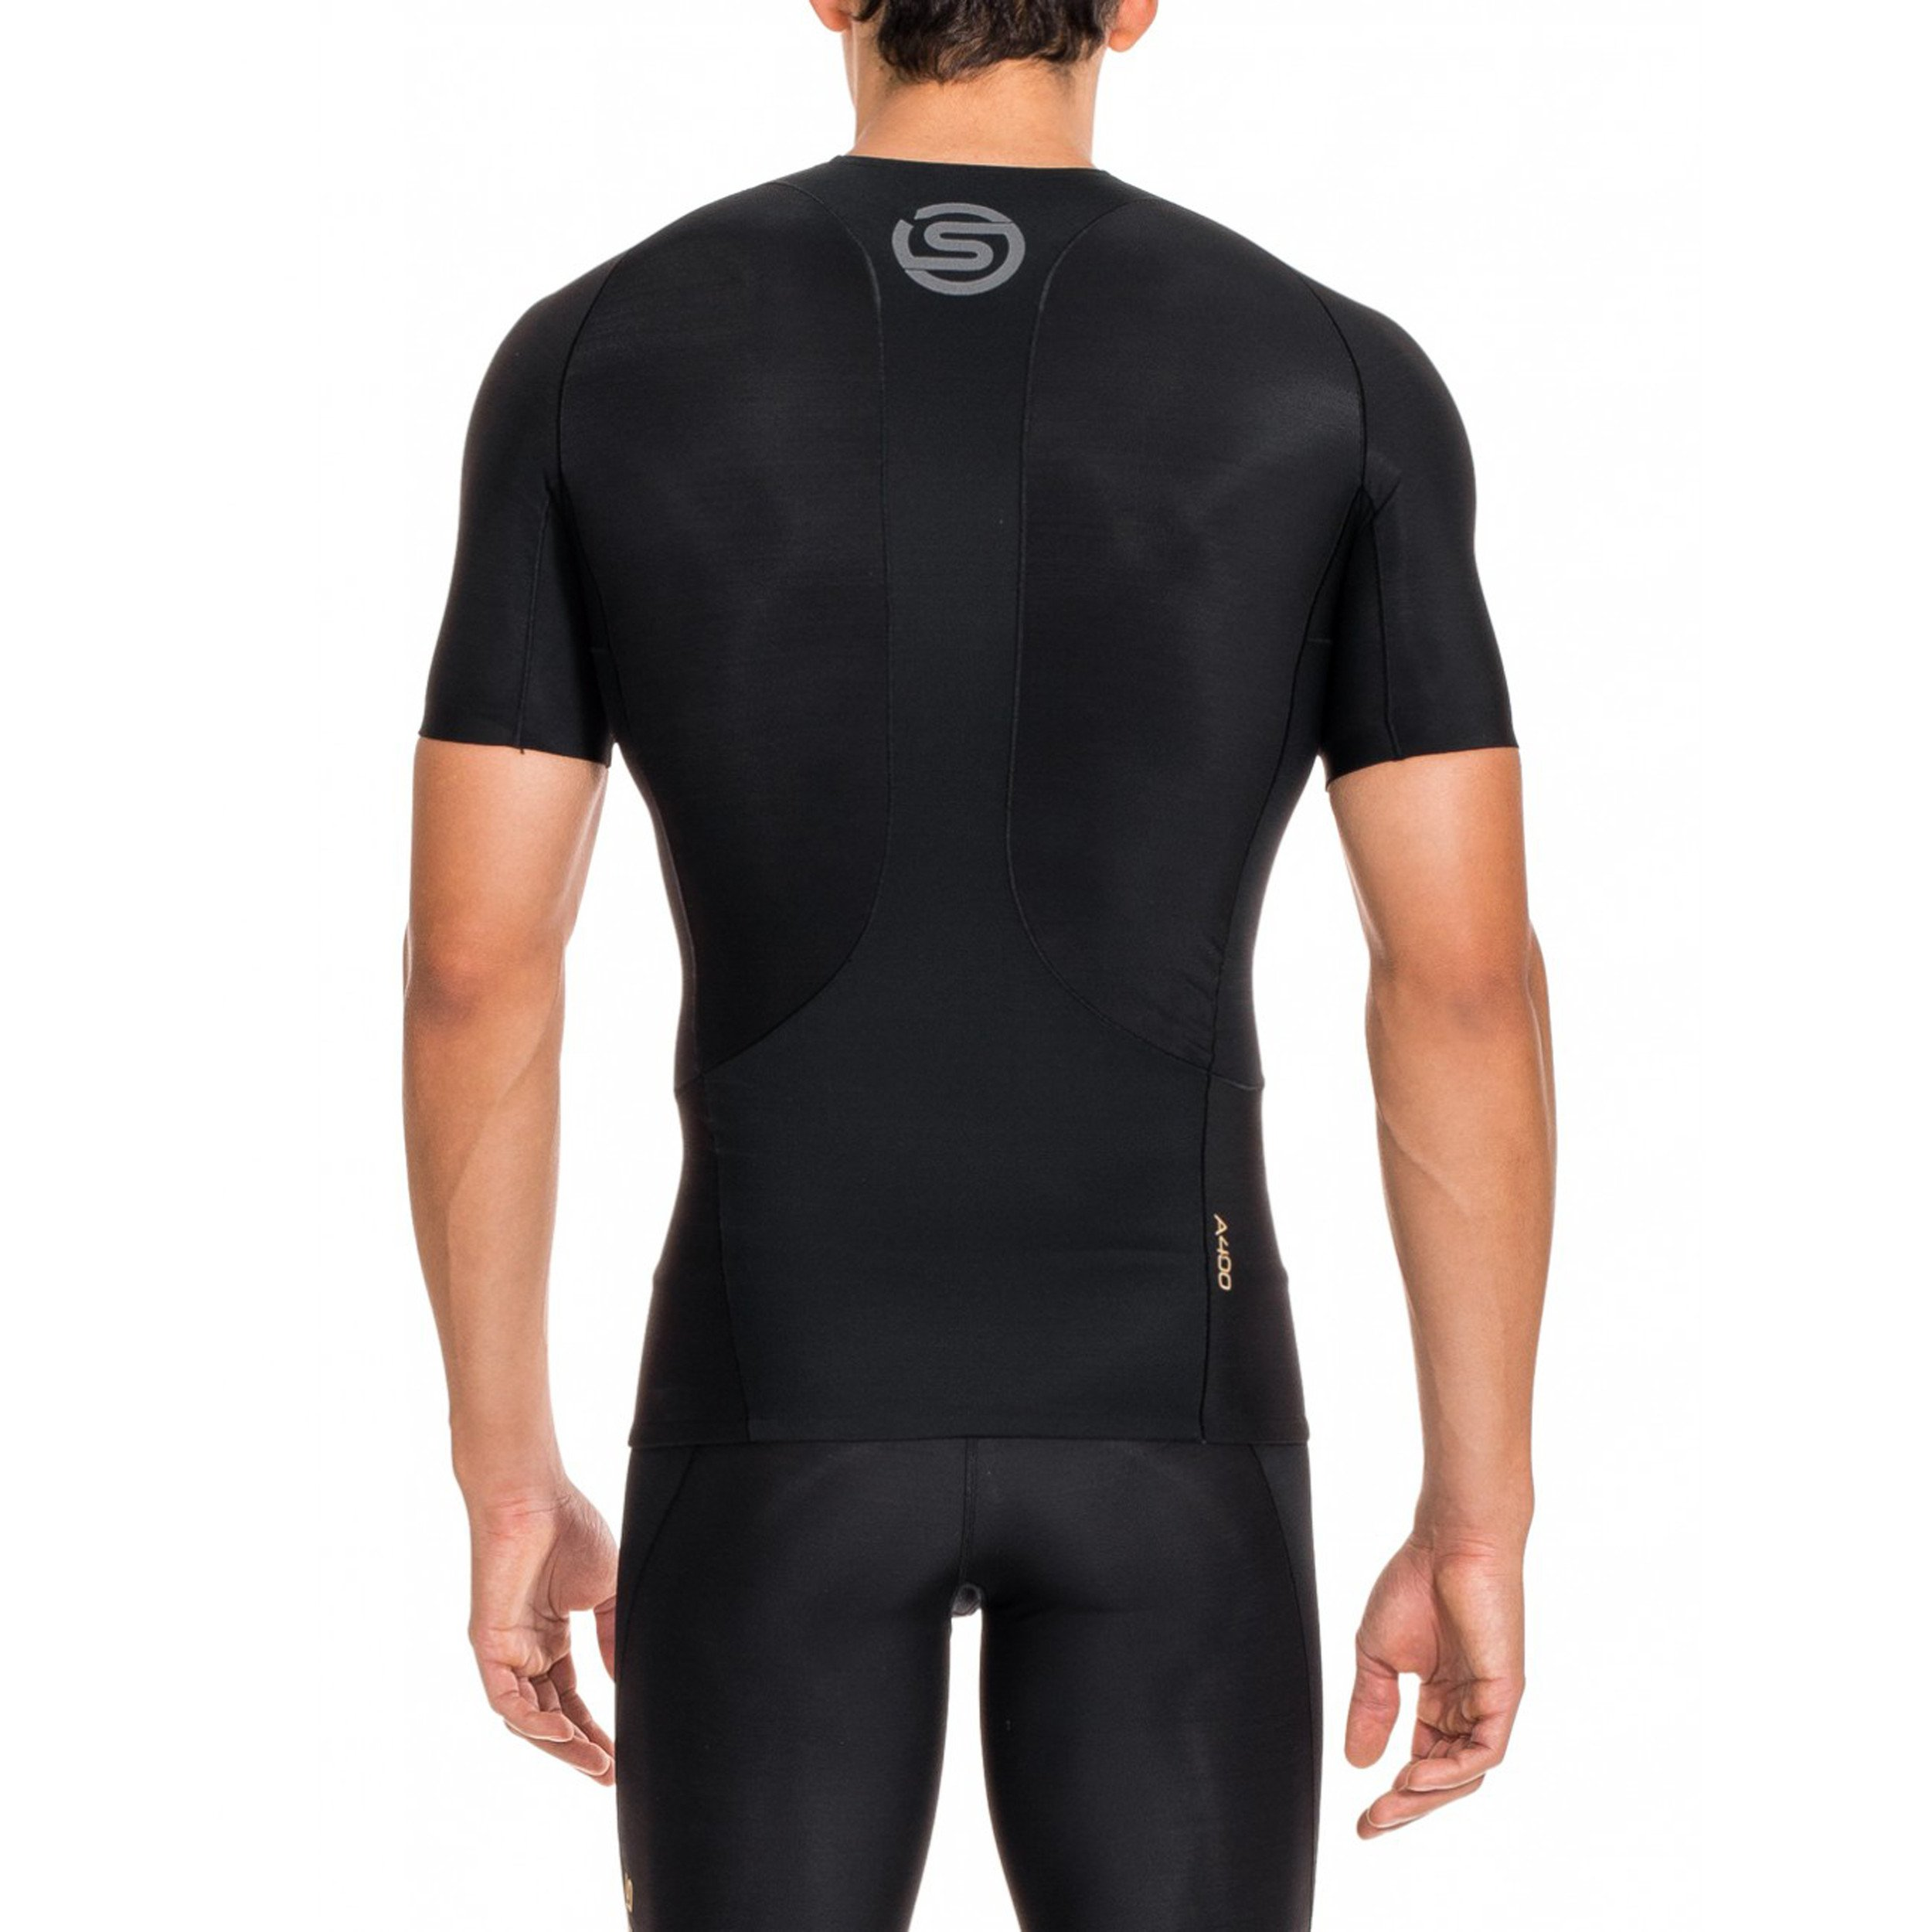 Skins Men's A400 Short Sleeve Compression Top, Black, Small by Skins (Image #3)